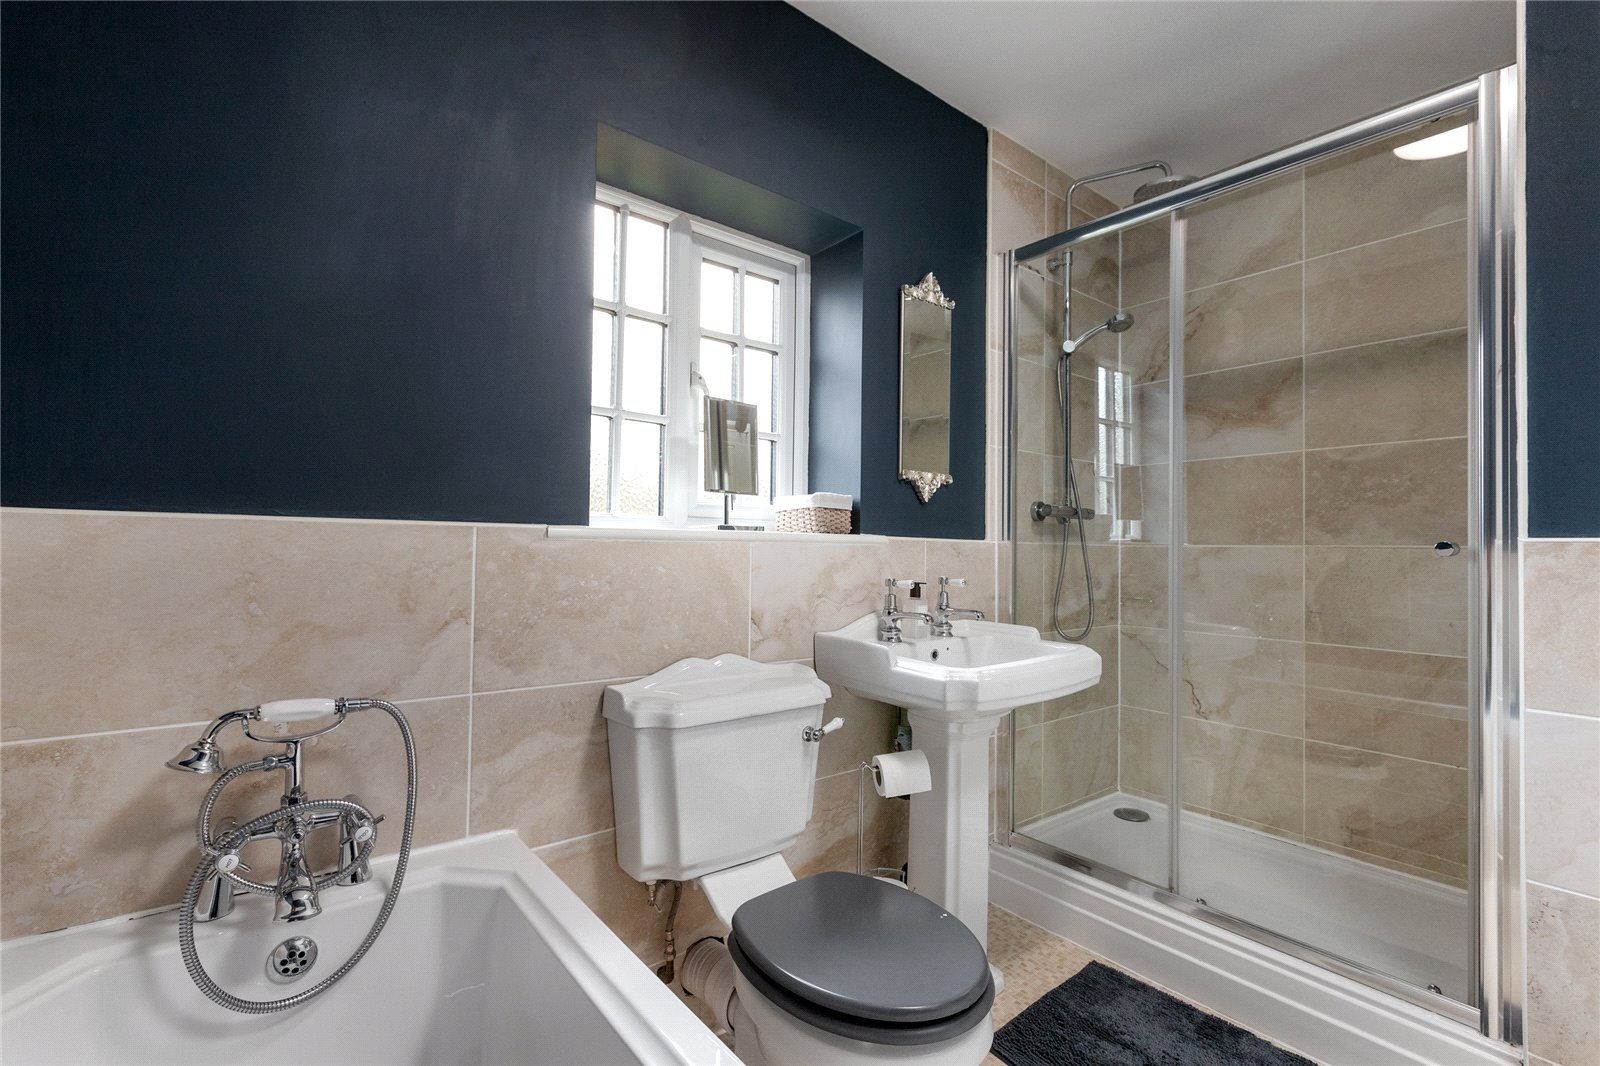 6 bed house for sale in Ladgate Lane, Middlesbrough  - Property Image 18